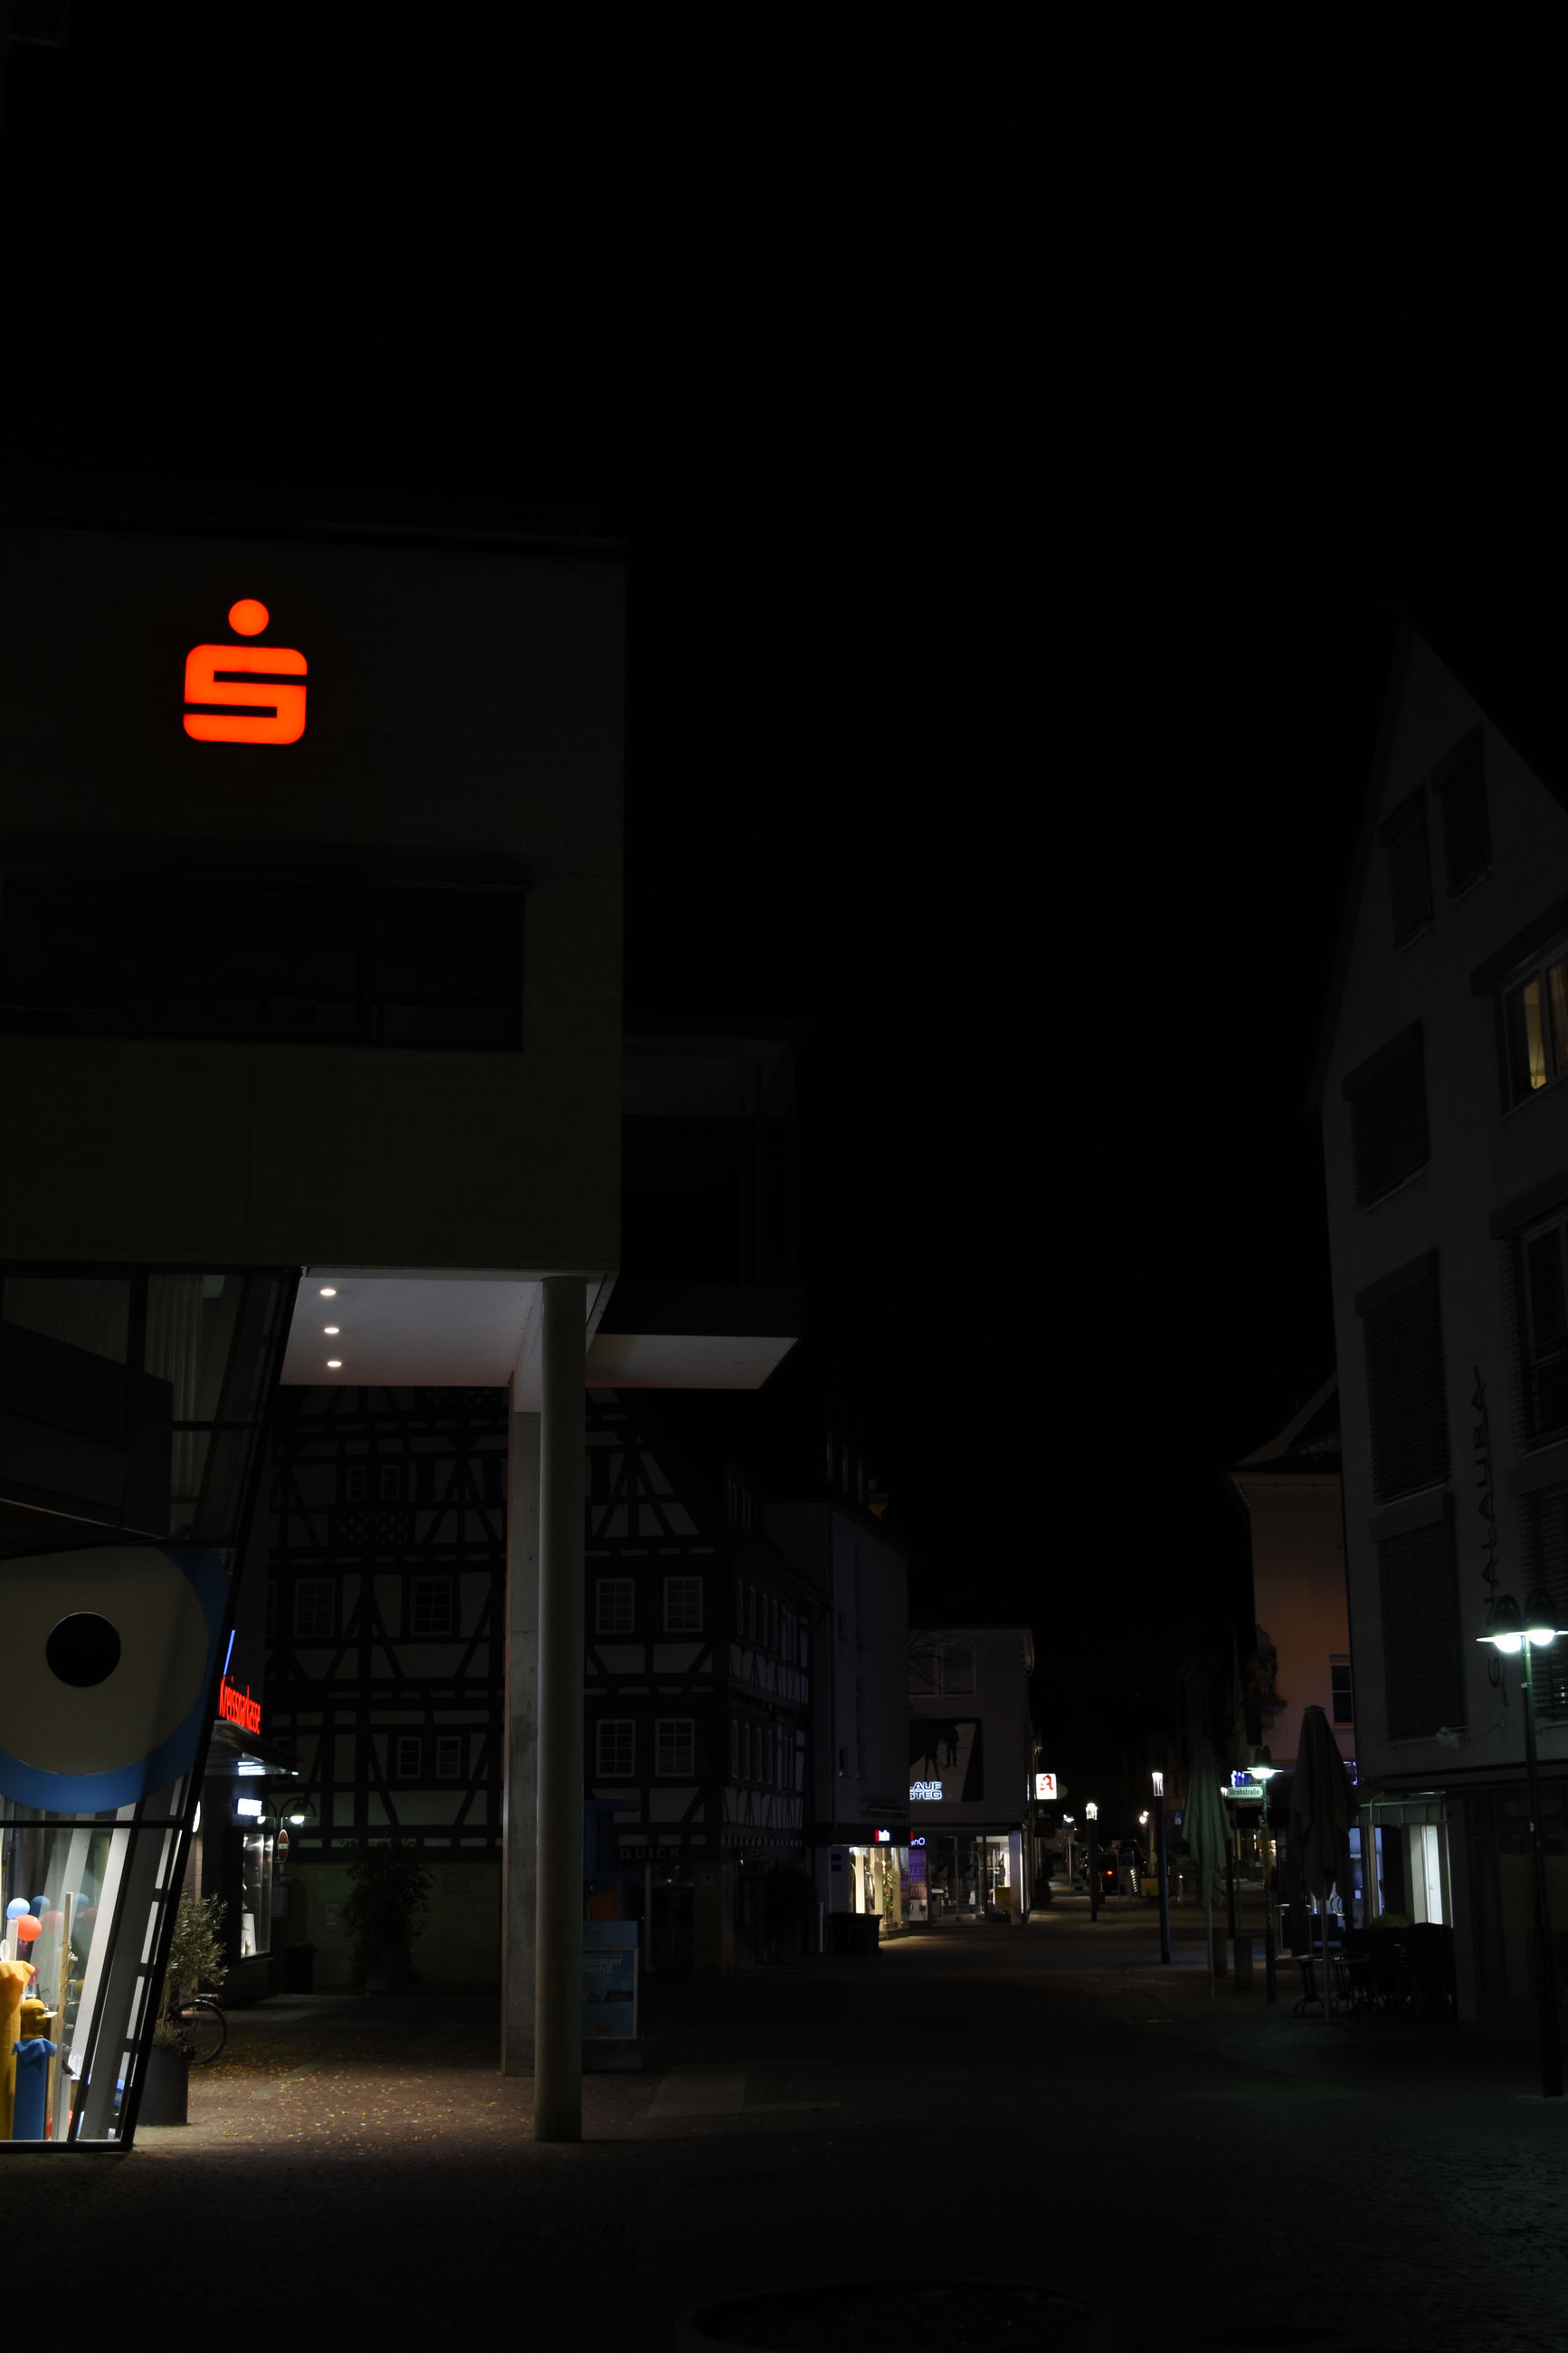 illuminated, sign, night, communication, architecture, built structure, city, building exterior, guidance, text, no people, western script, transportation, copy space, outdoors, street, information, lighting equipment, nature, information sign, light